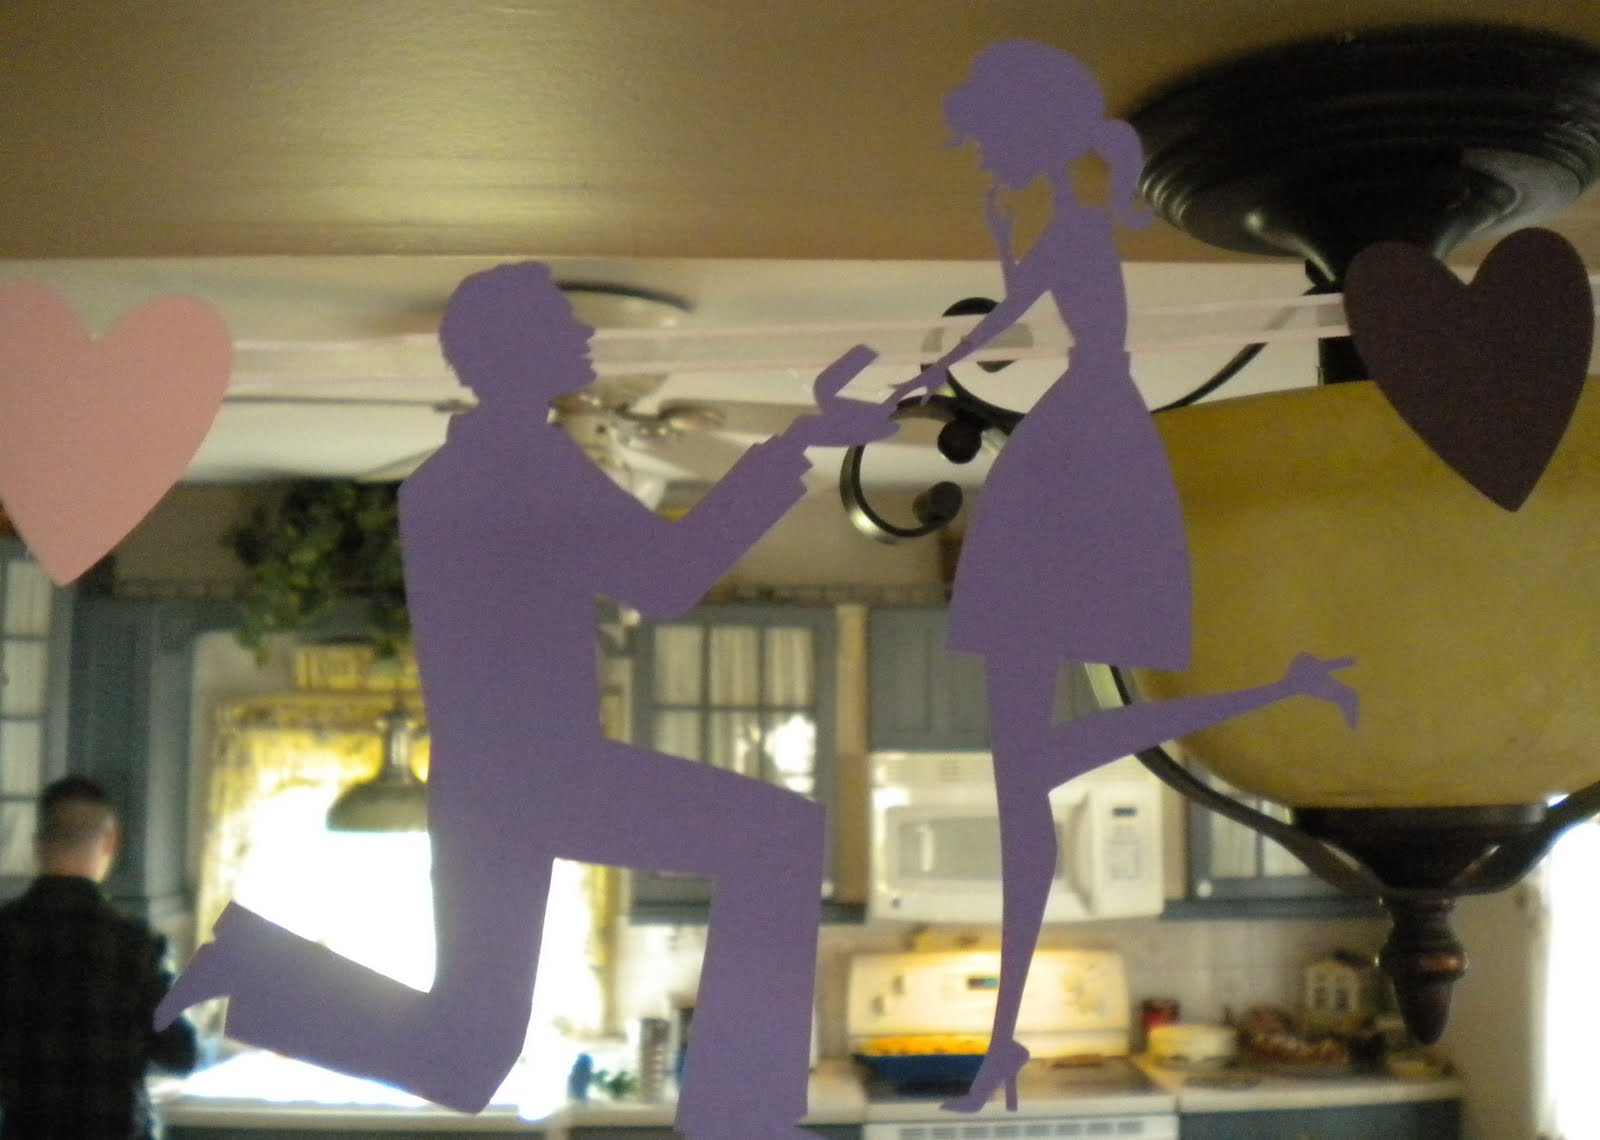 4.Paper Cutout Portraying the Couple